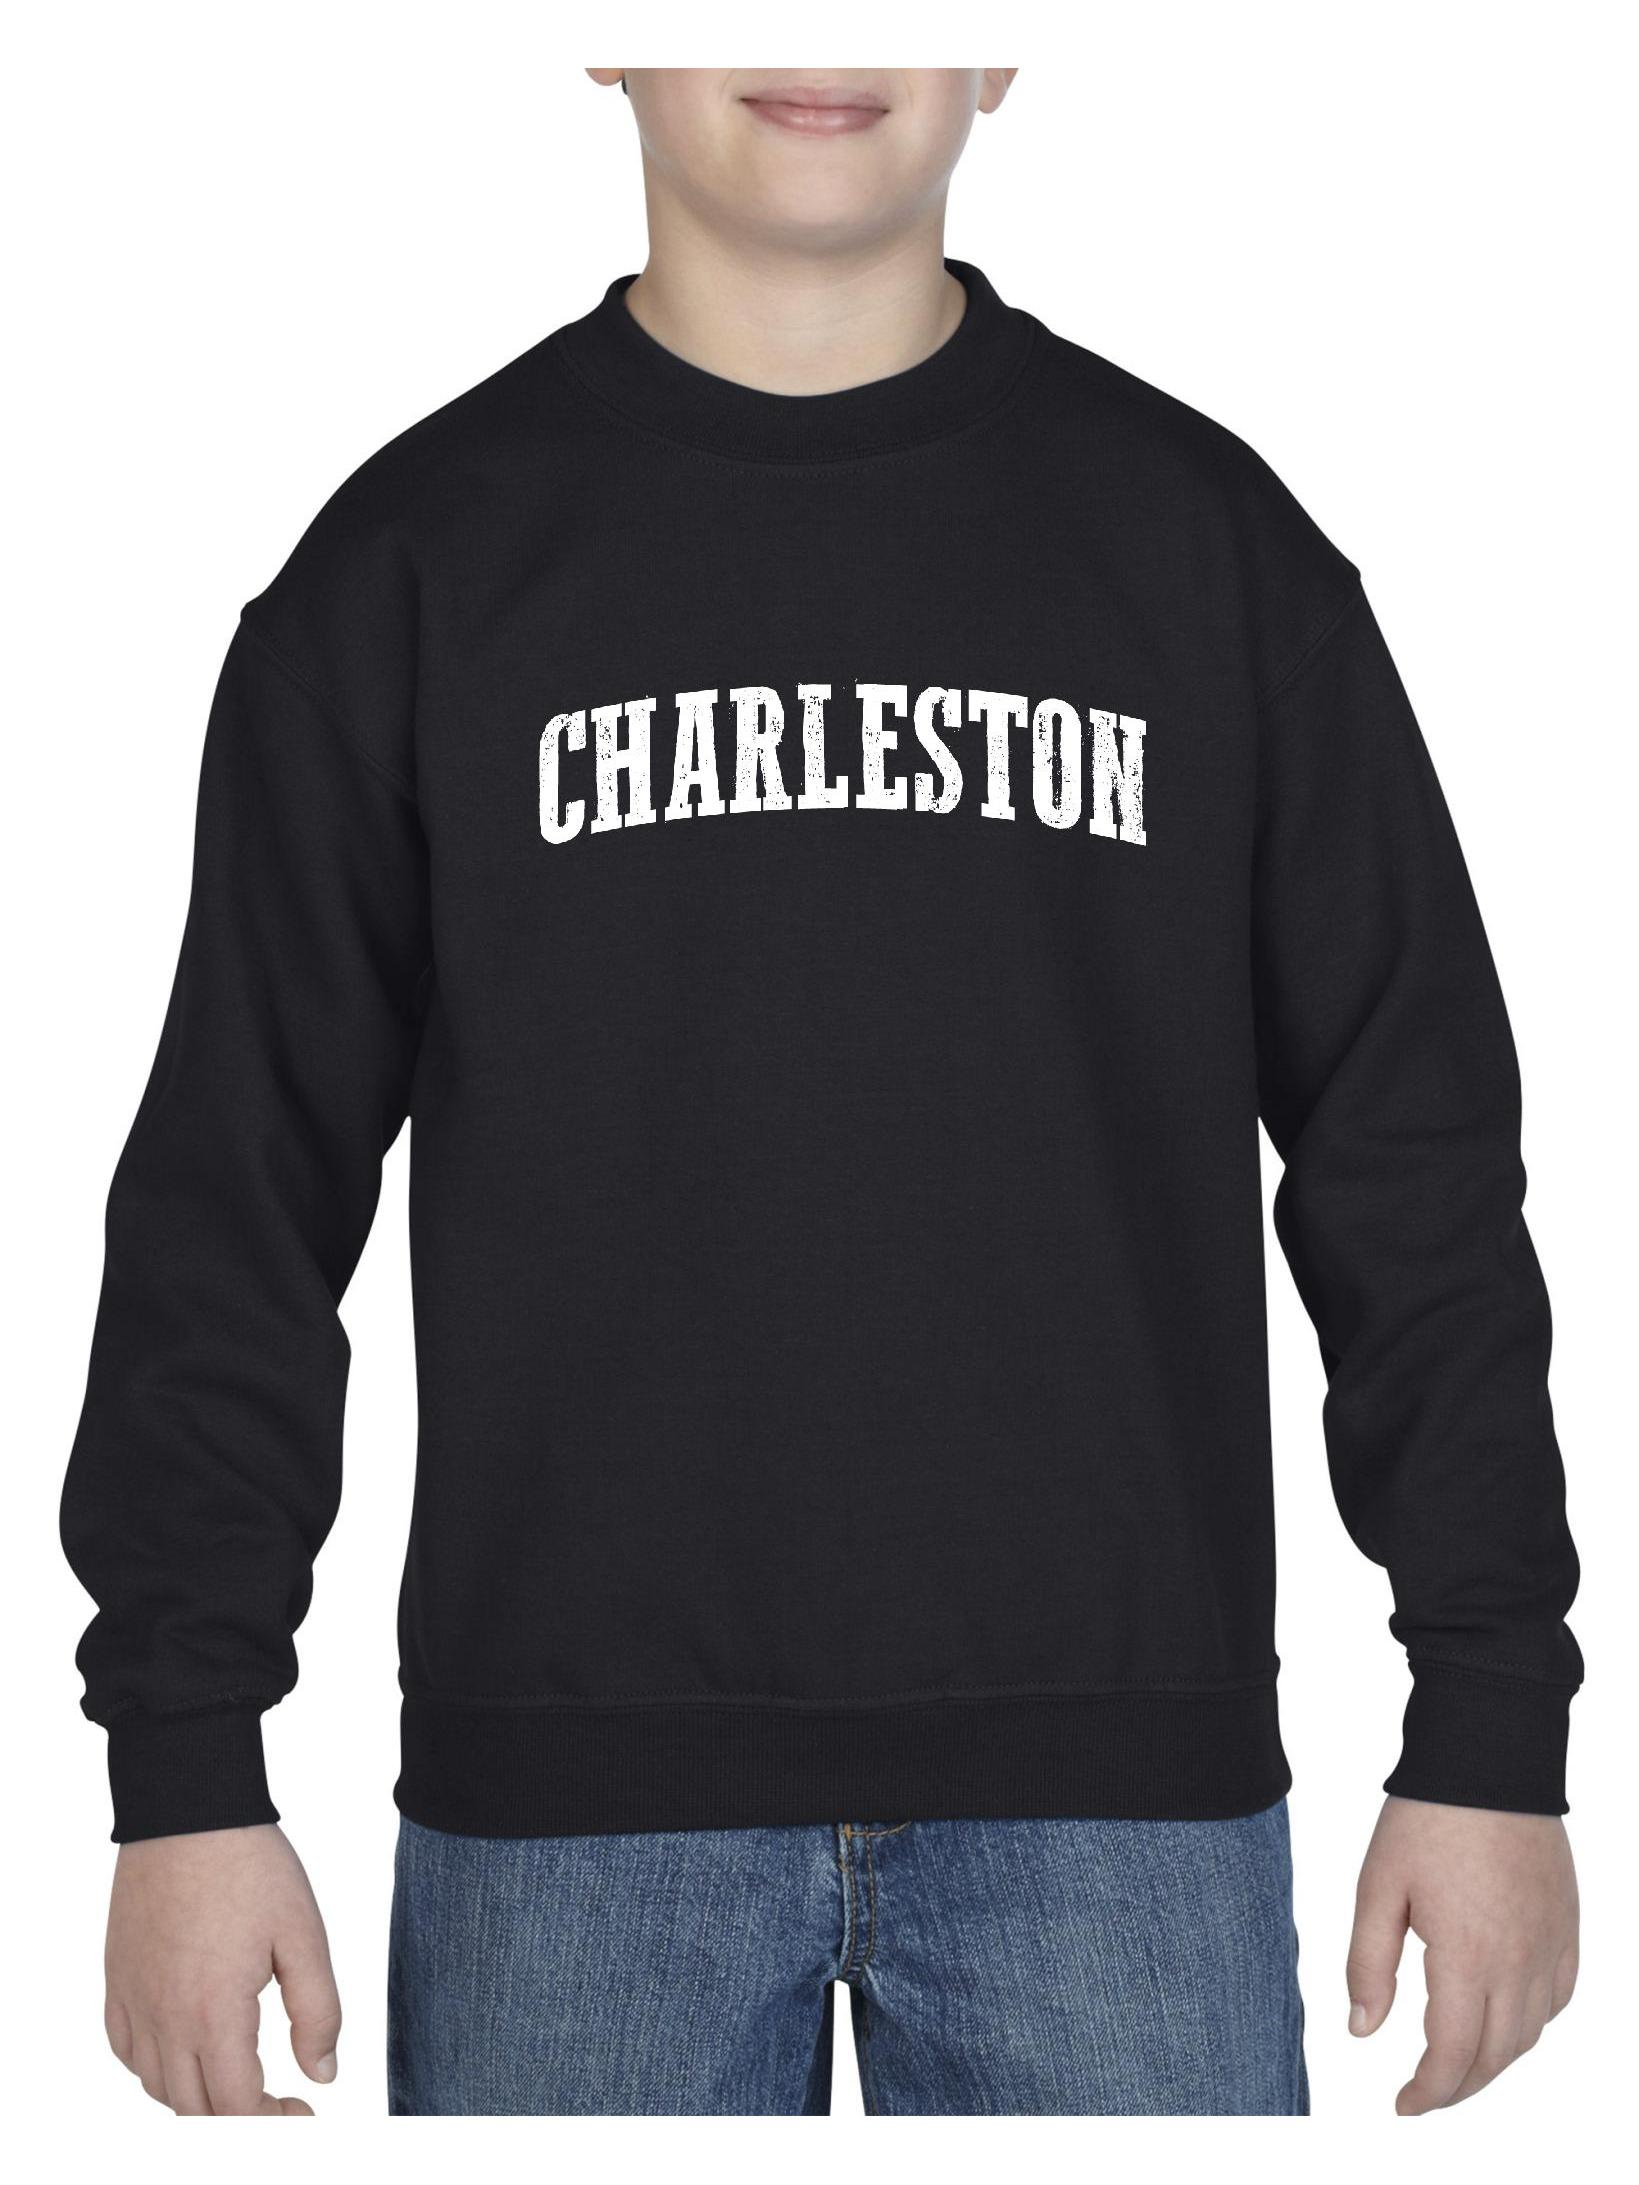 Charleston South Carolina Unisex Youth Crewneck Sweatshirt